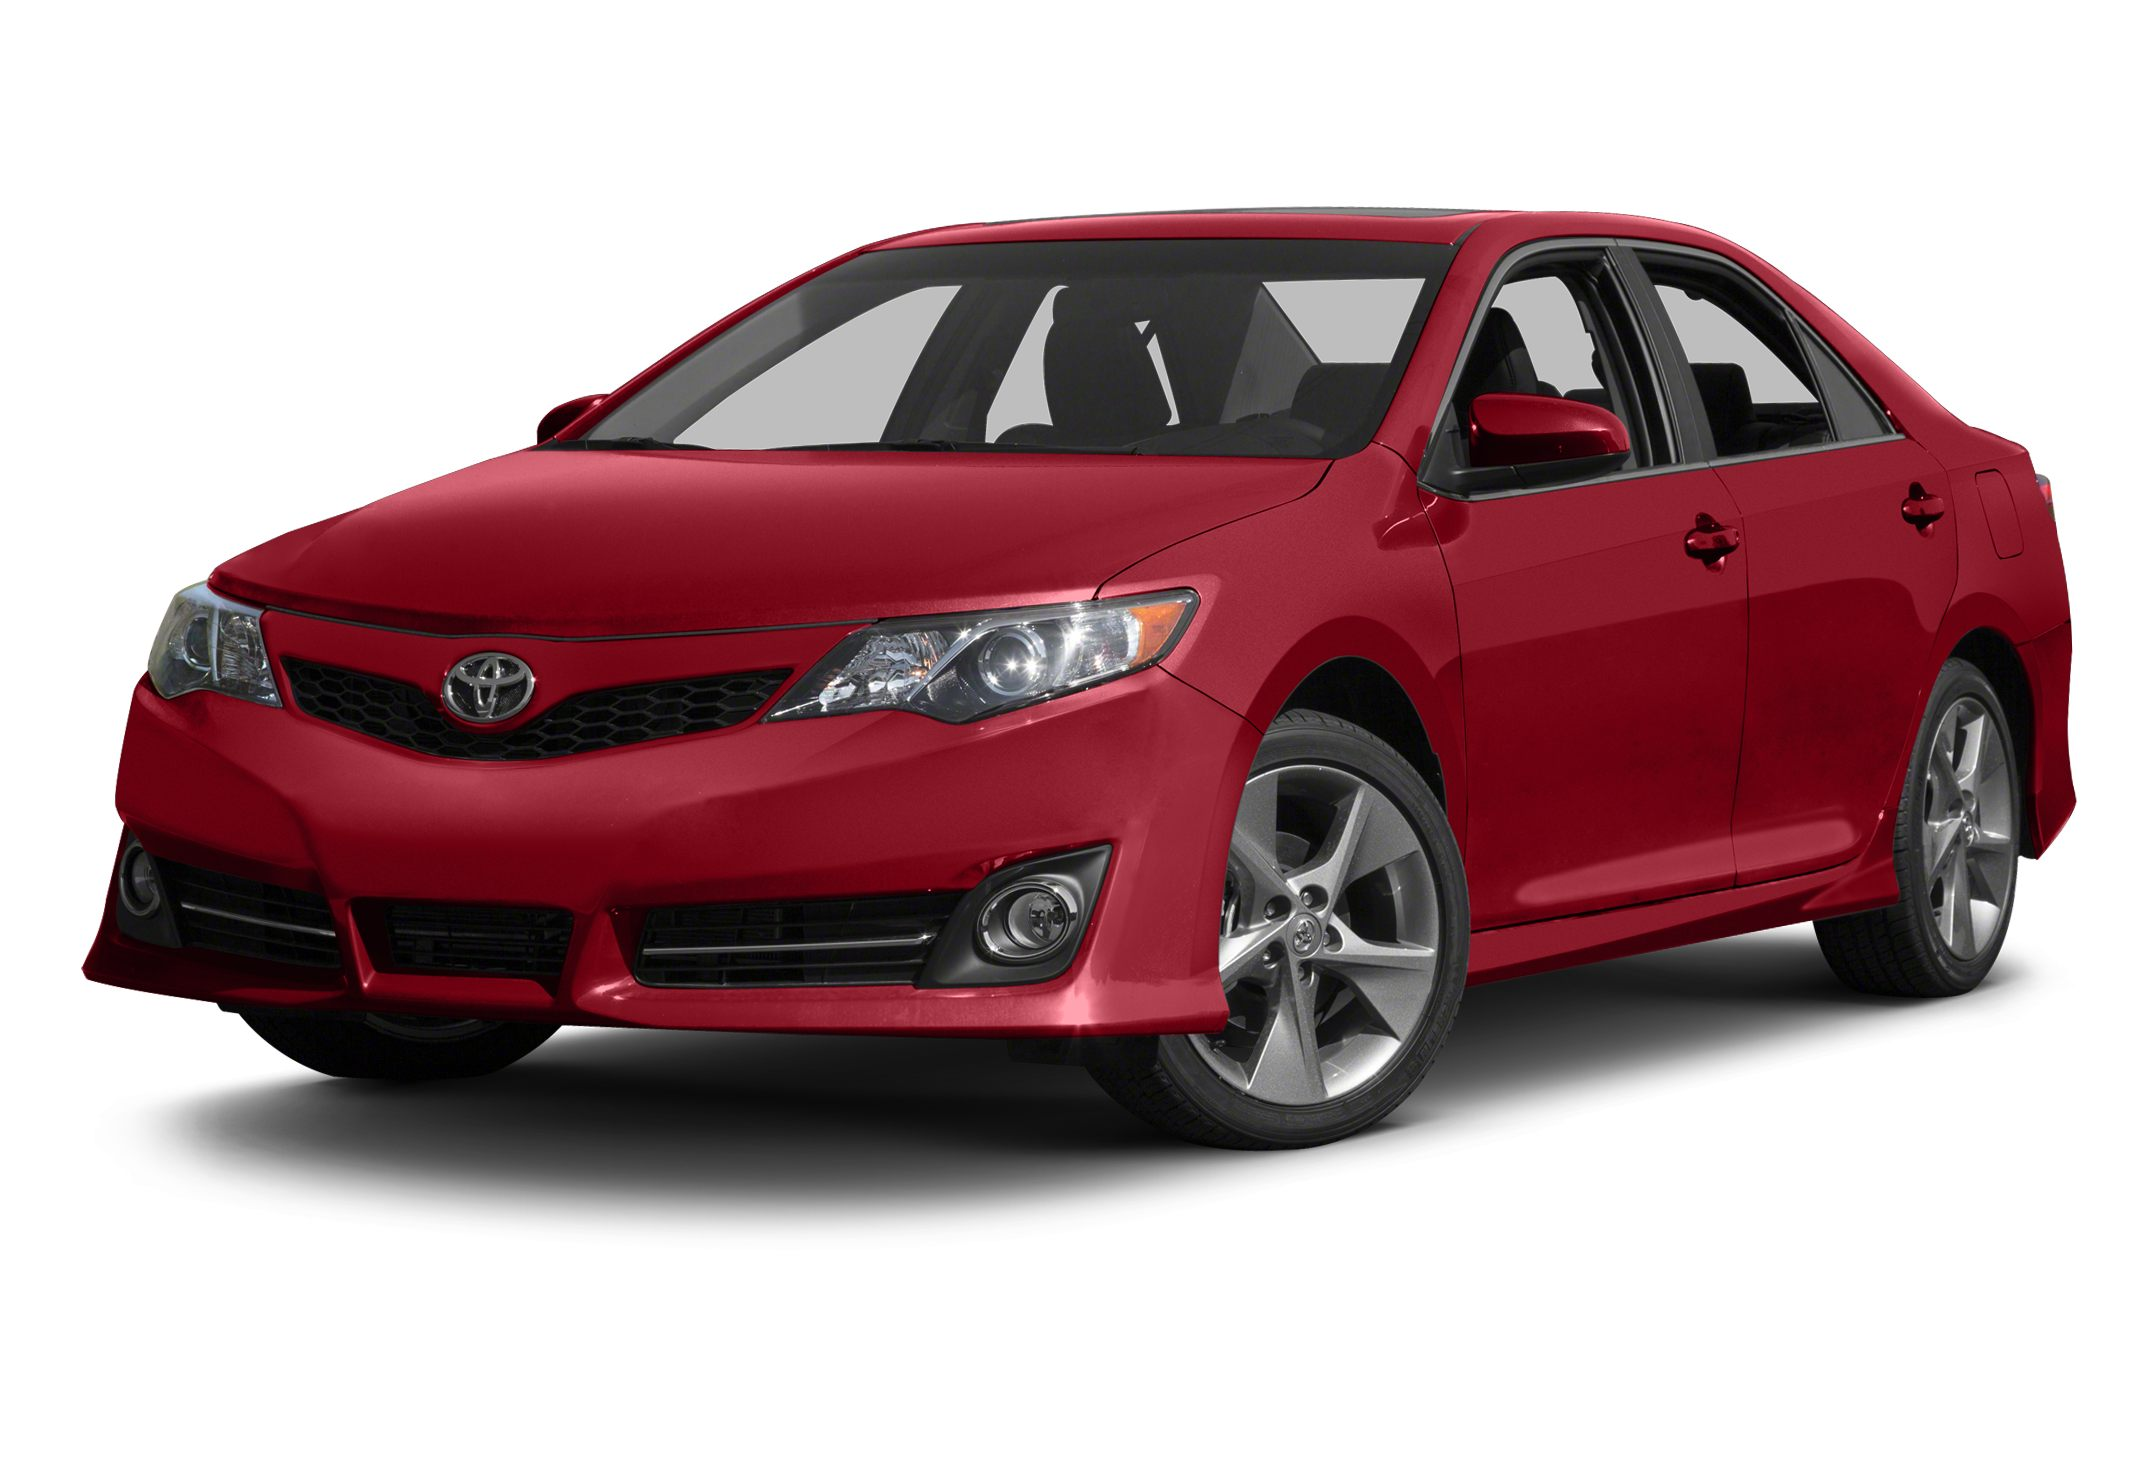 2013 Toyota Camry SE EPA 35 MPG Hwy25 MPG City SE trim CARFAX 1-Owner LOW MILES - 27927 iPod